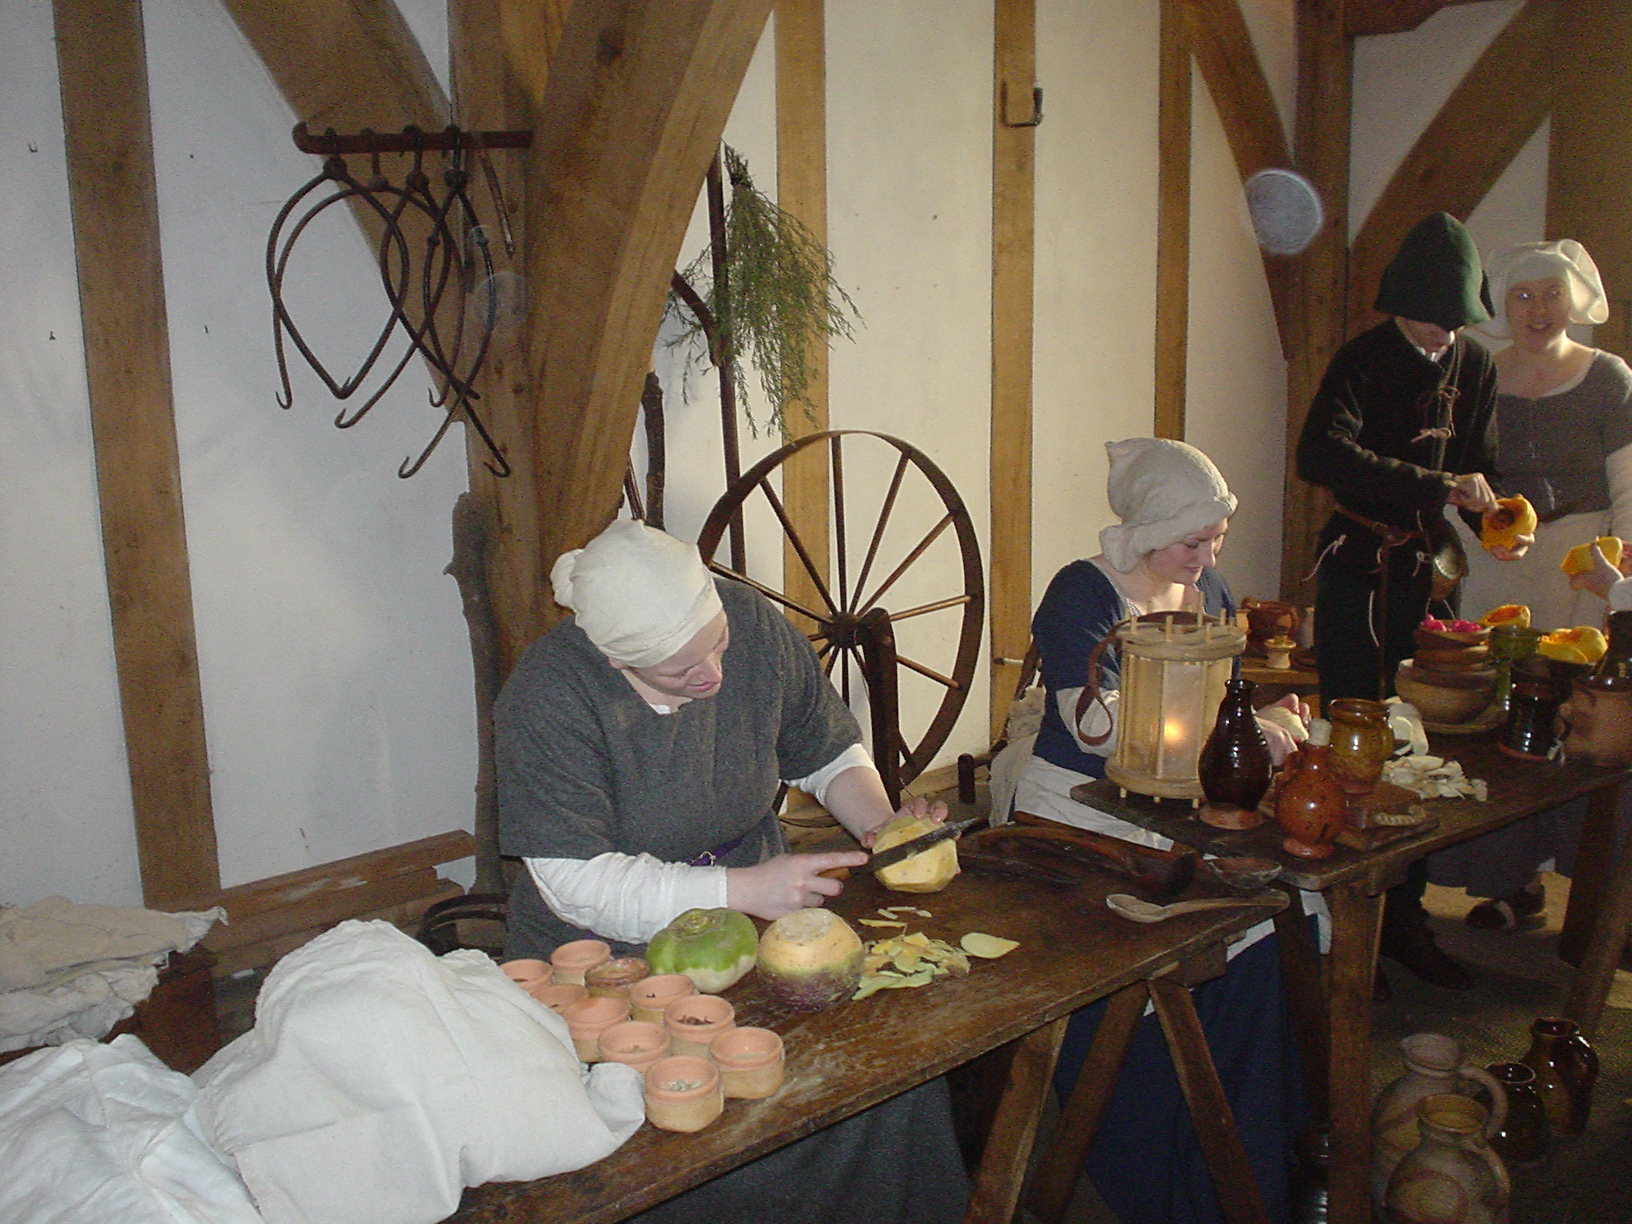 Preparing a meal at Barley Hall